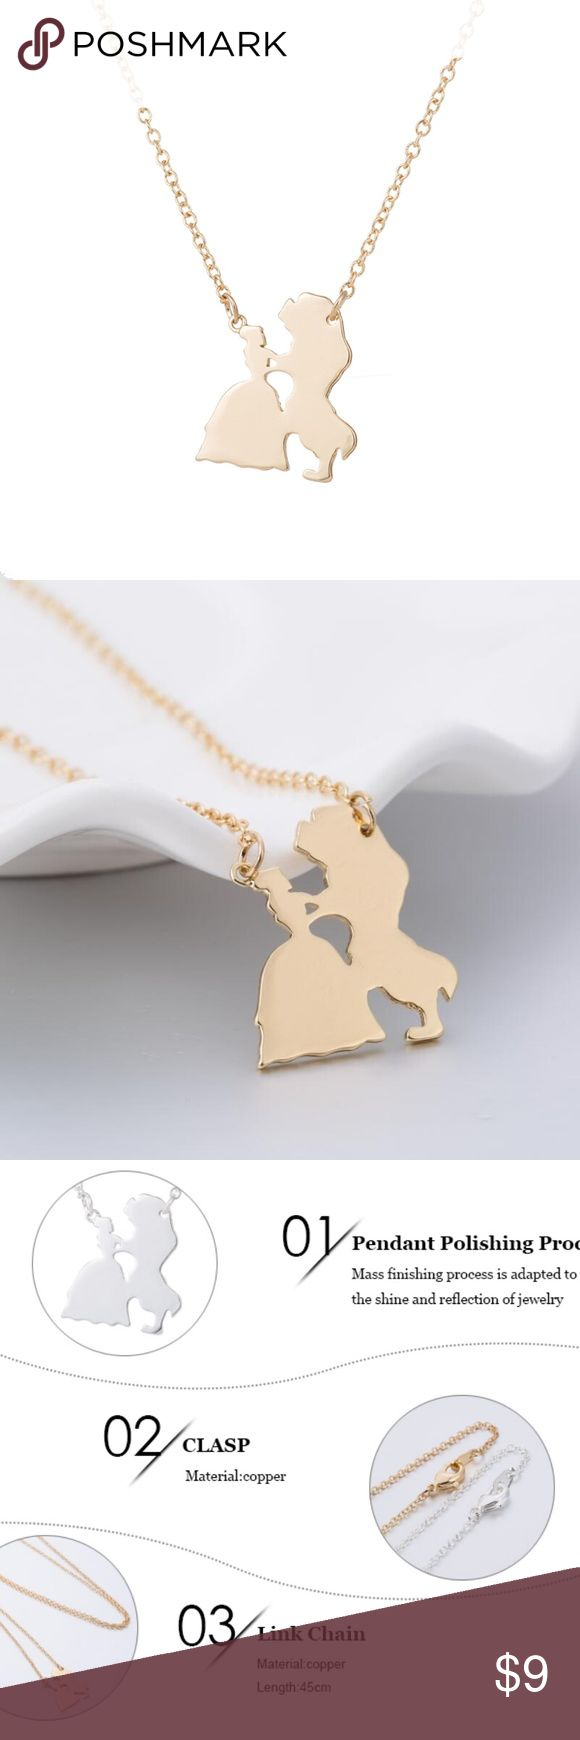 Beauty and the Beast Gold Silhouette Necklace NEW Beauty and the Beast Gold Silhouette Necklace NEW  This necklace is composed of a copper alloy to prevent rust.  Chain is 18 inches long.  Pendant is 0.75 inches by 0.625 inches. Jewelry Necklaces